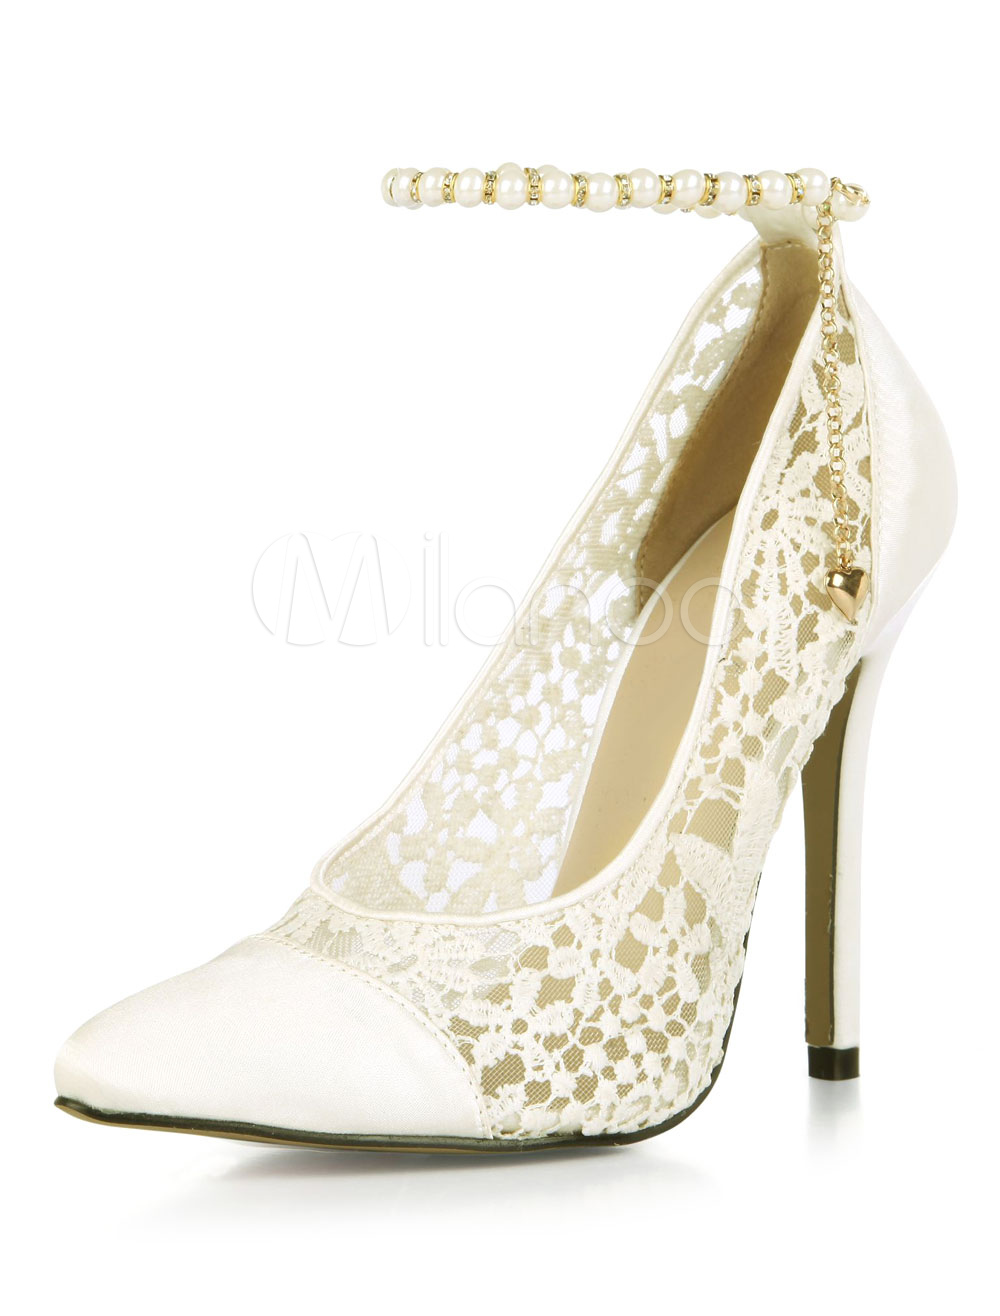 Buy Ivory Wedding Shoes Pointed Toe Beaded Stiletto Sky High Ankle Strap Bridal Pumps for $47.99 in Milanoo store